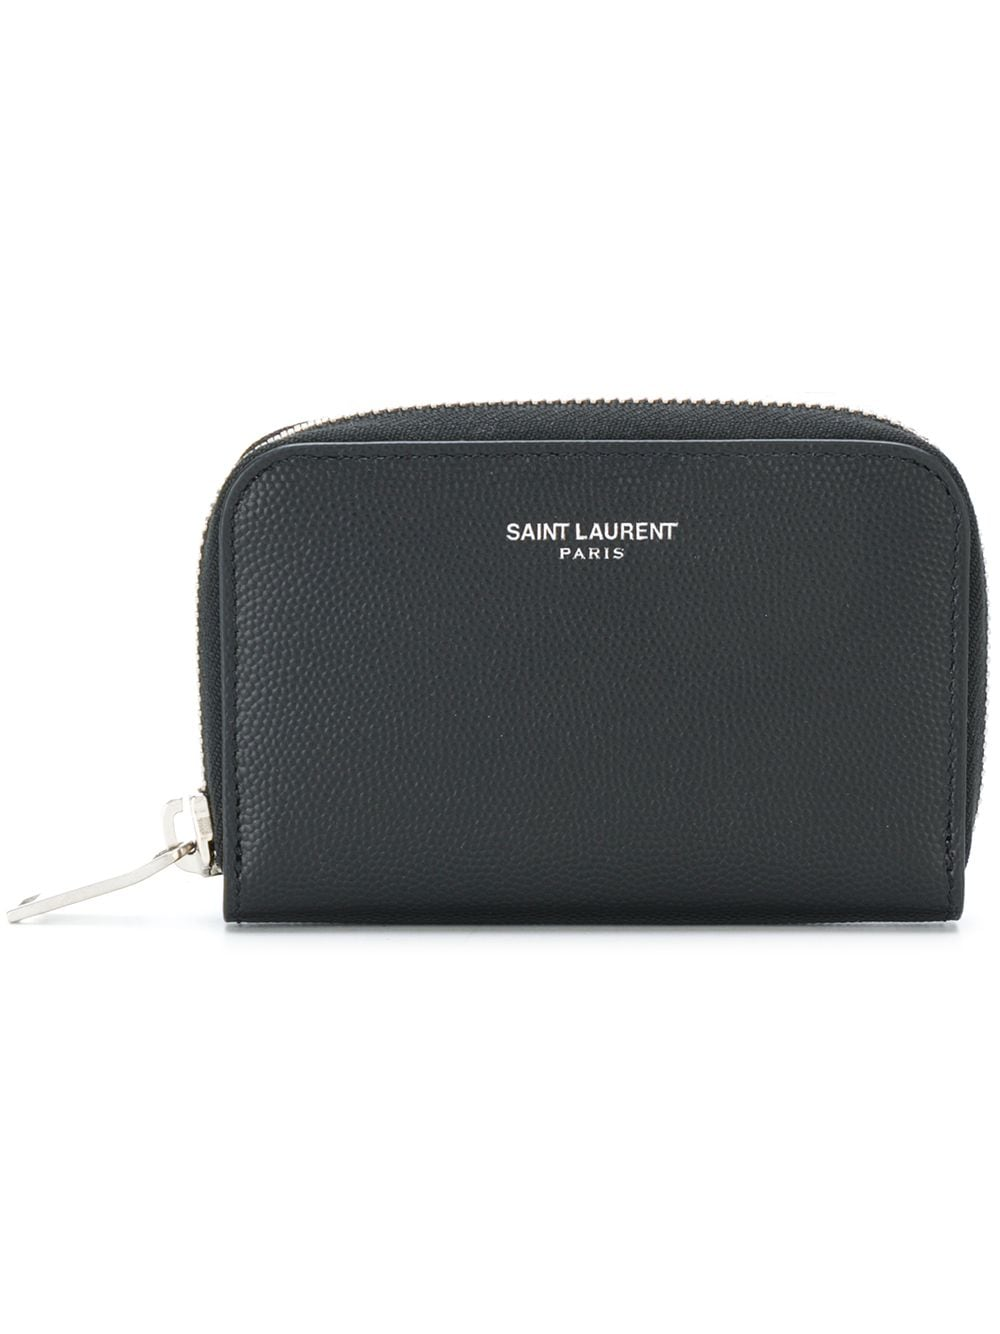 Saint Laurent small zip around wallet - 1000 BLACK von Saint Laurent